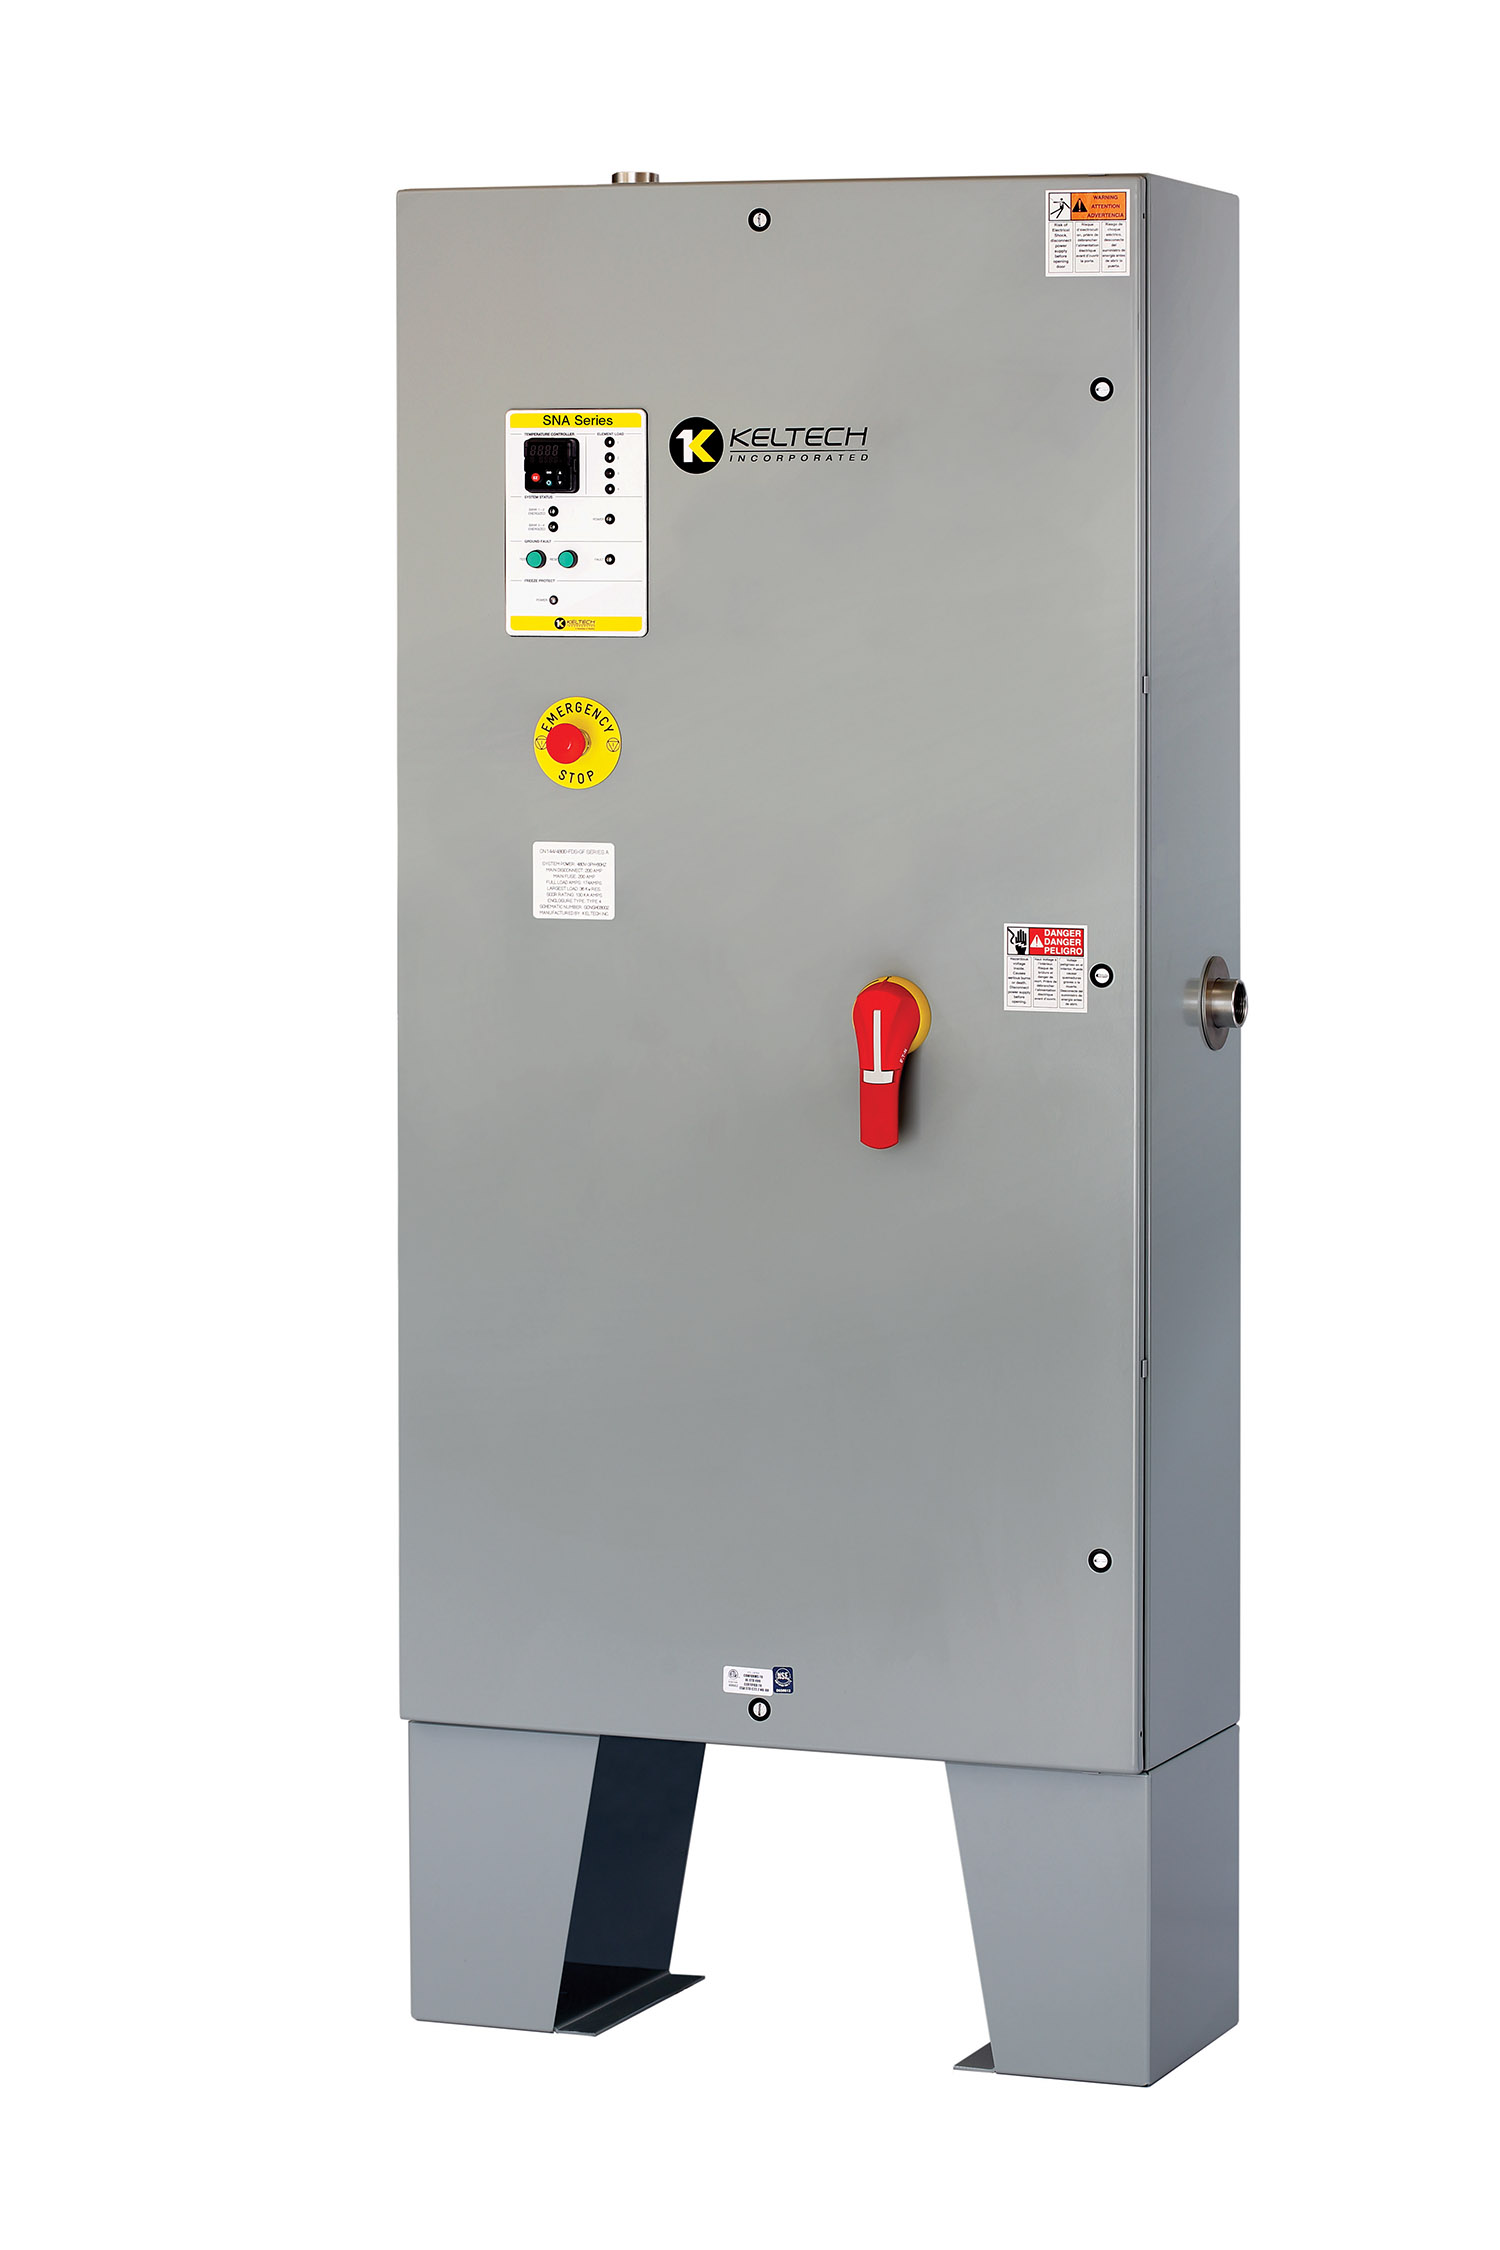 gsw series 5 water heater manual